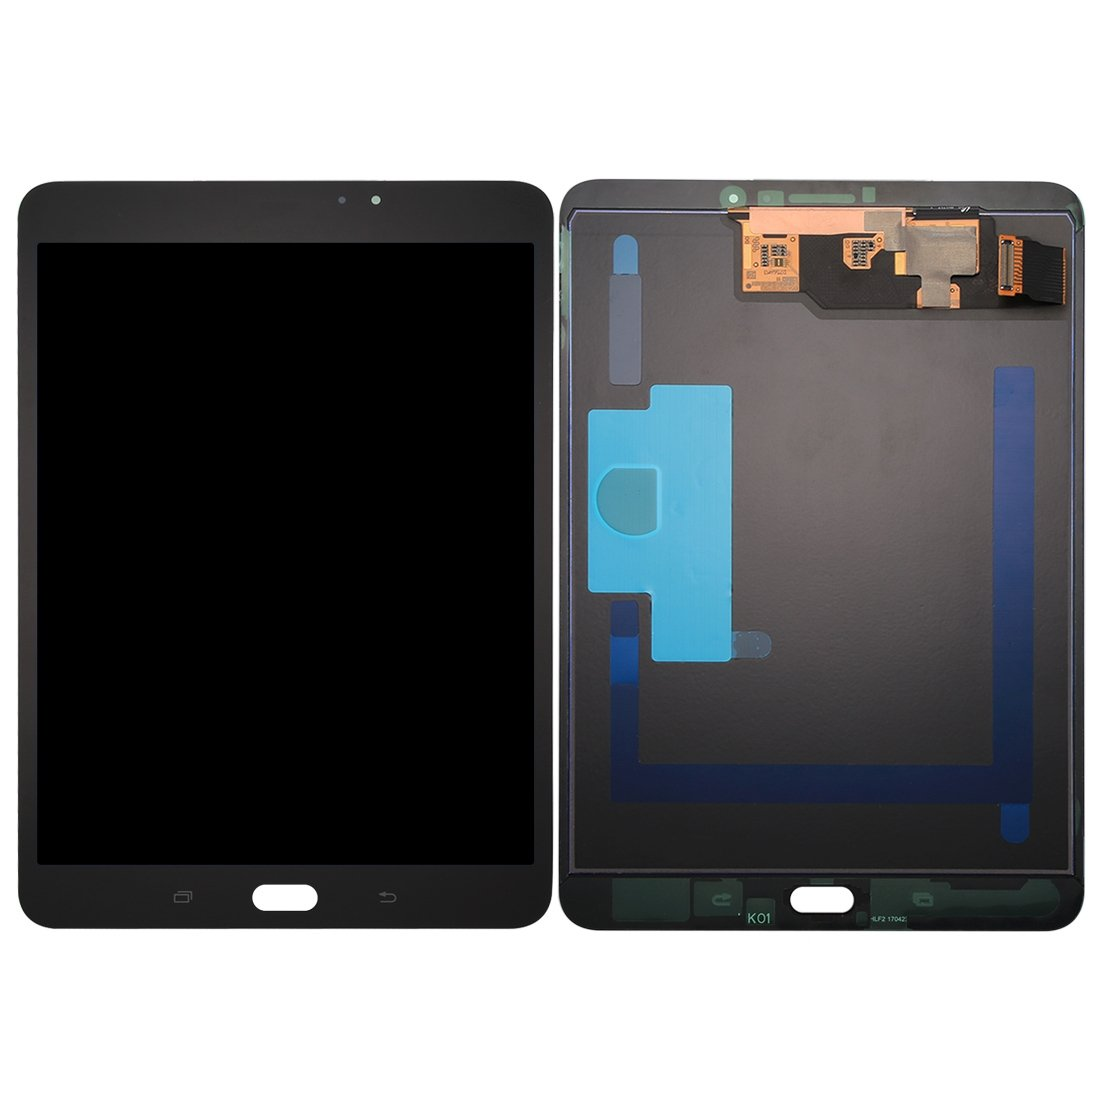 iPartsBuy for Samsung Galaxy Tab S2 8.0 / T710 LCD Screen + Touch Screen Digitizer Assembly (Black) by iPartsBuy